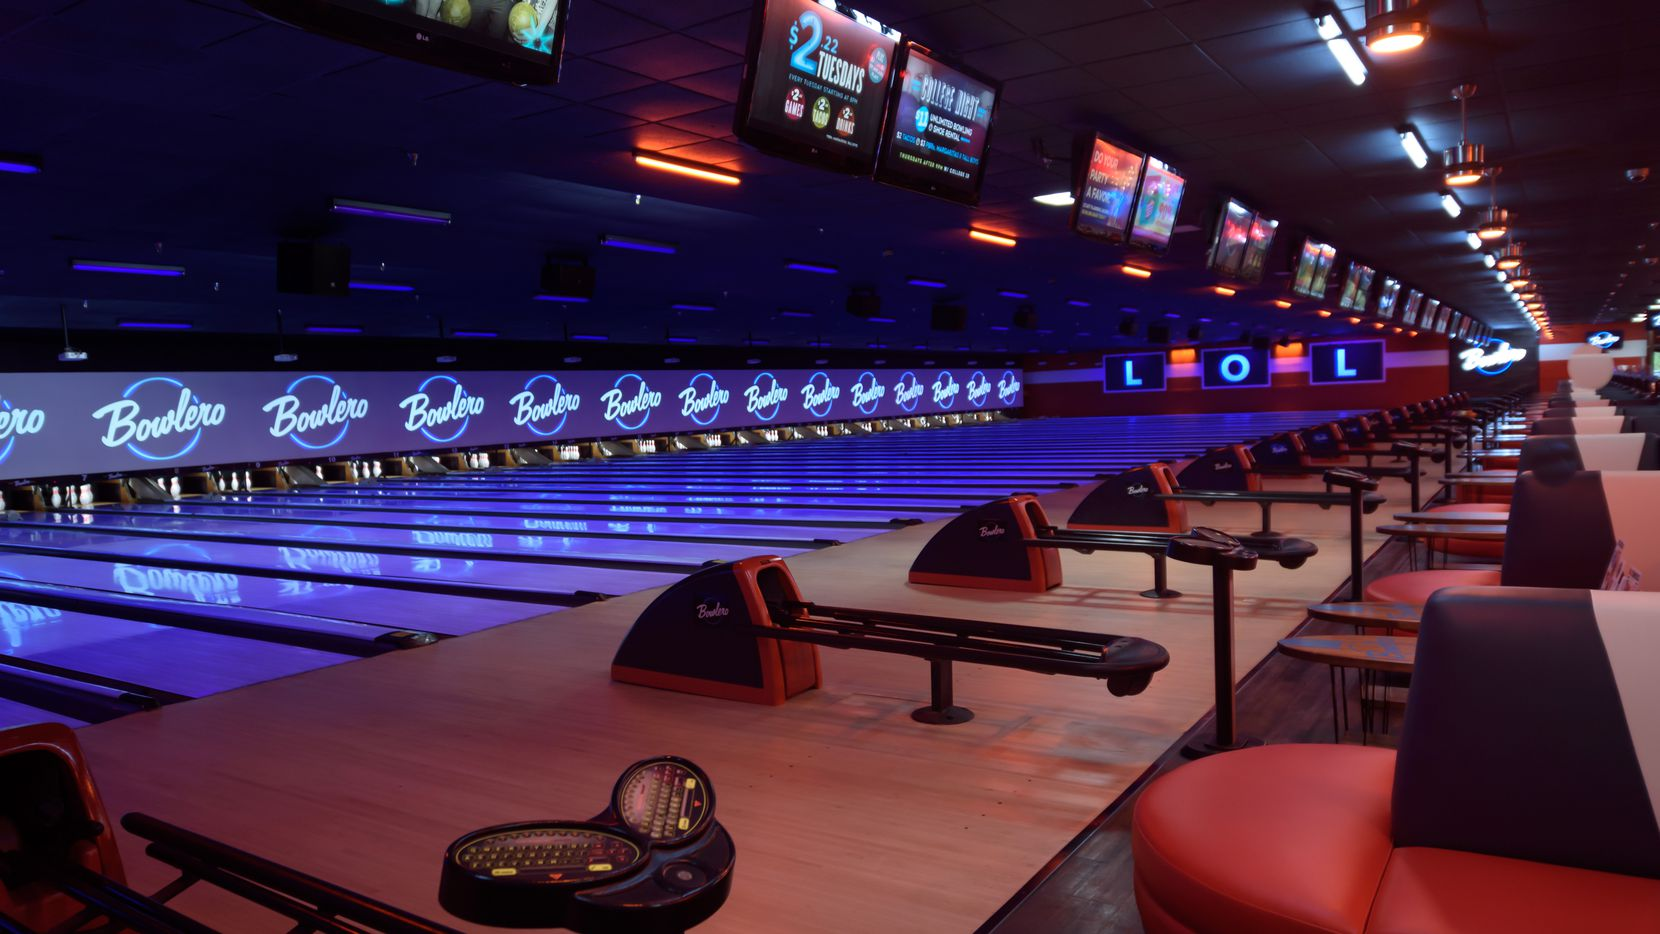 Bowled move: Fairview will be home to new Bowlero not far